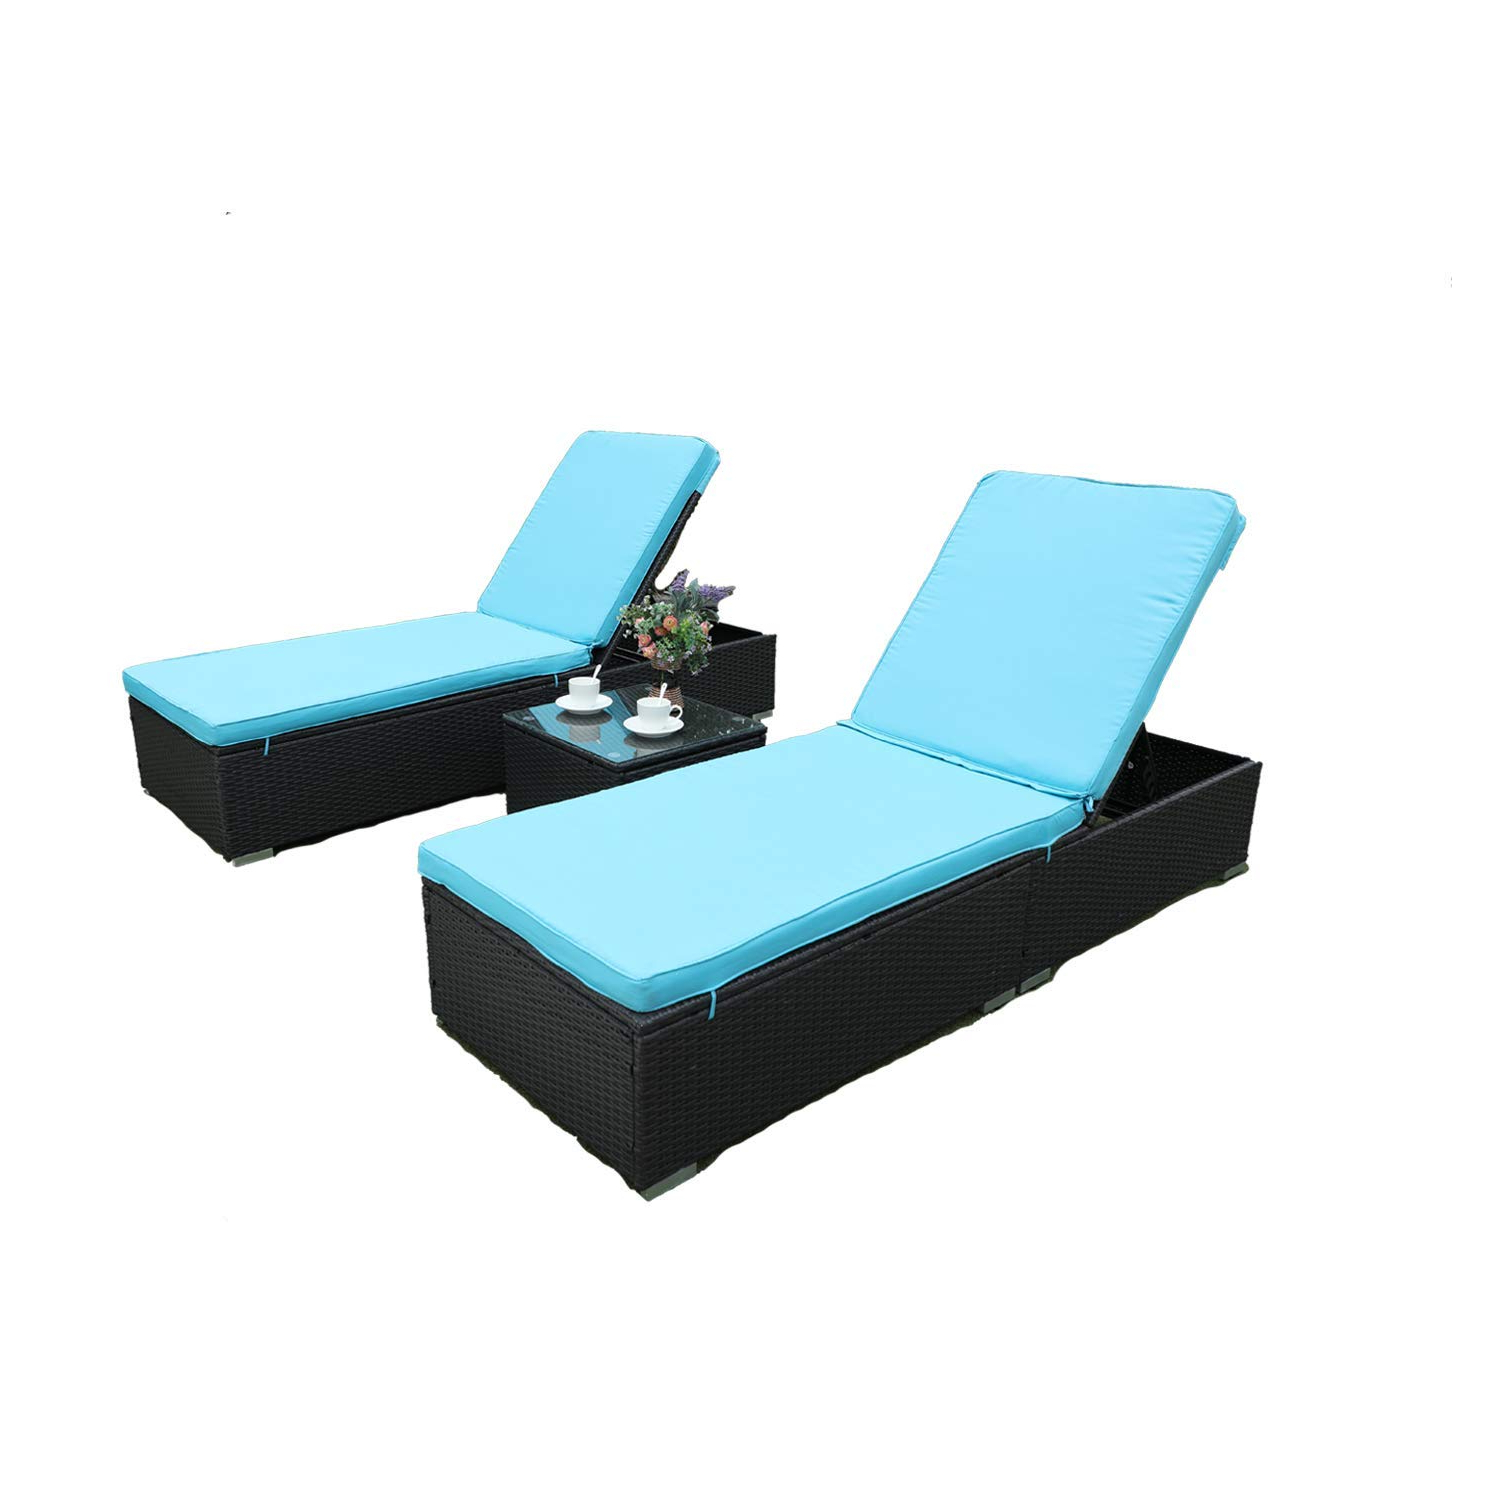 2020 Cheap Blue Chaise Lounge Chairs, Find Blue Chaise Lounge With Regard To Floral Blossom Chaise Lounge Chairs With Cushion (View 2 of 25)